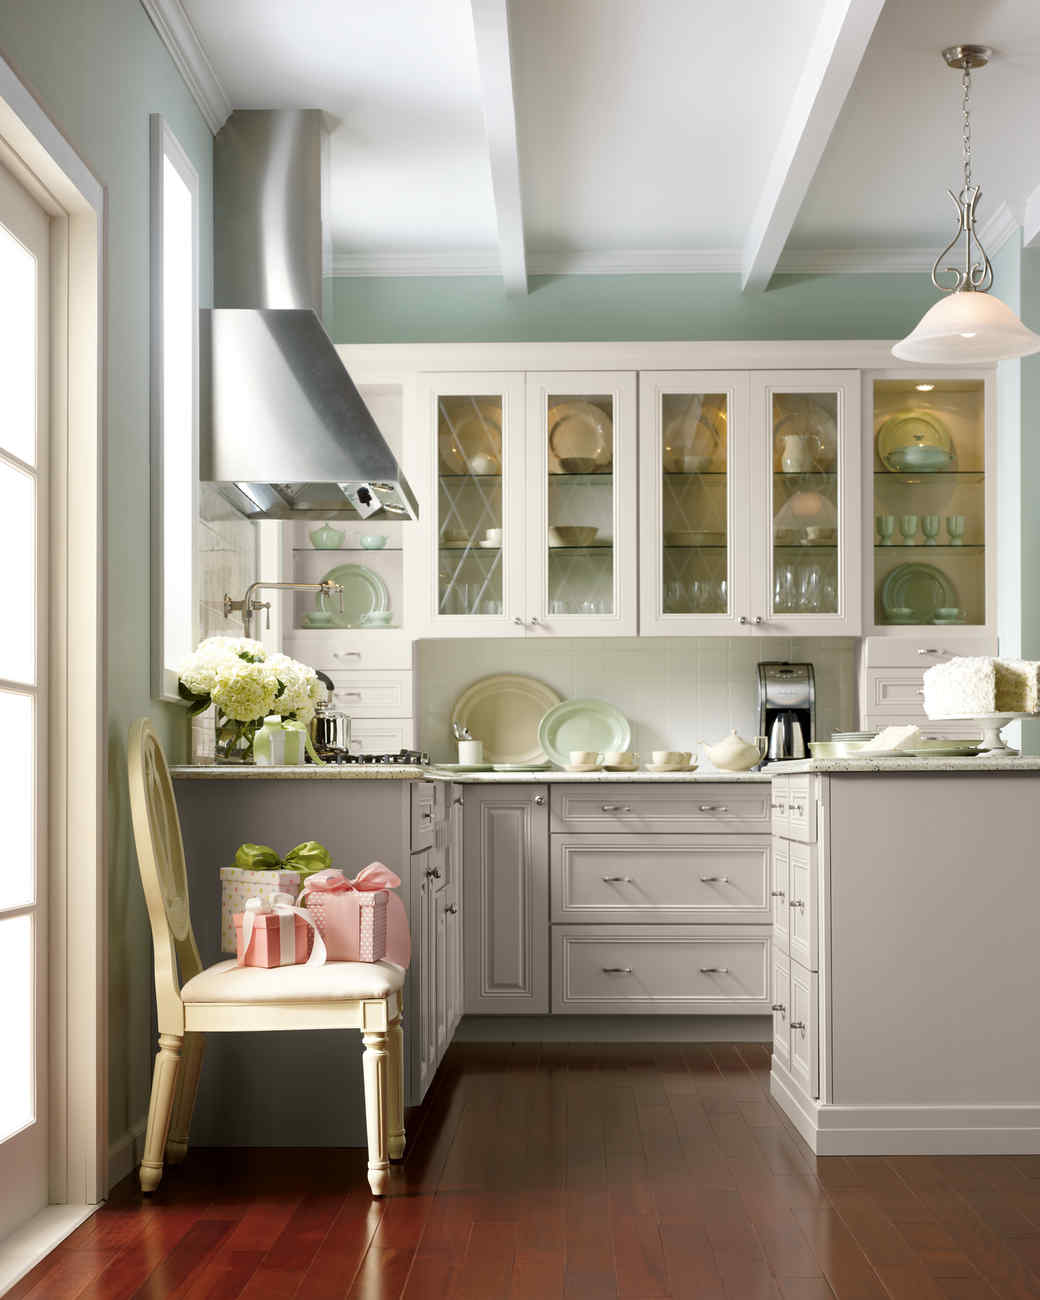 Martha Stewart Living Kitchen Designs From The Home Depot | Martha Stewart